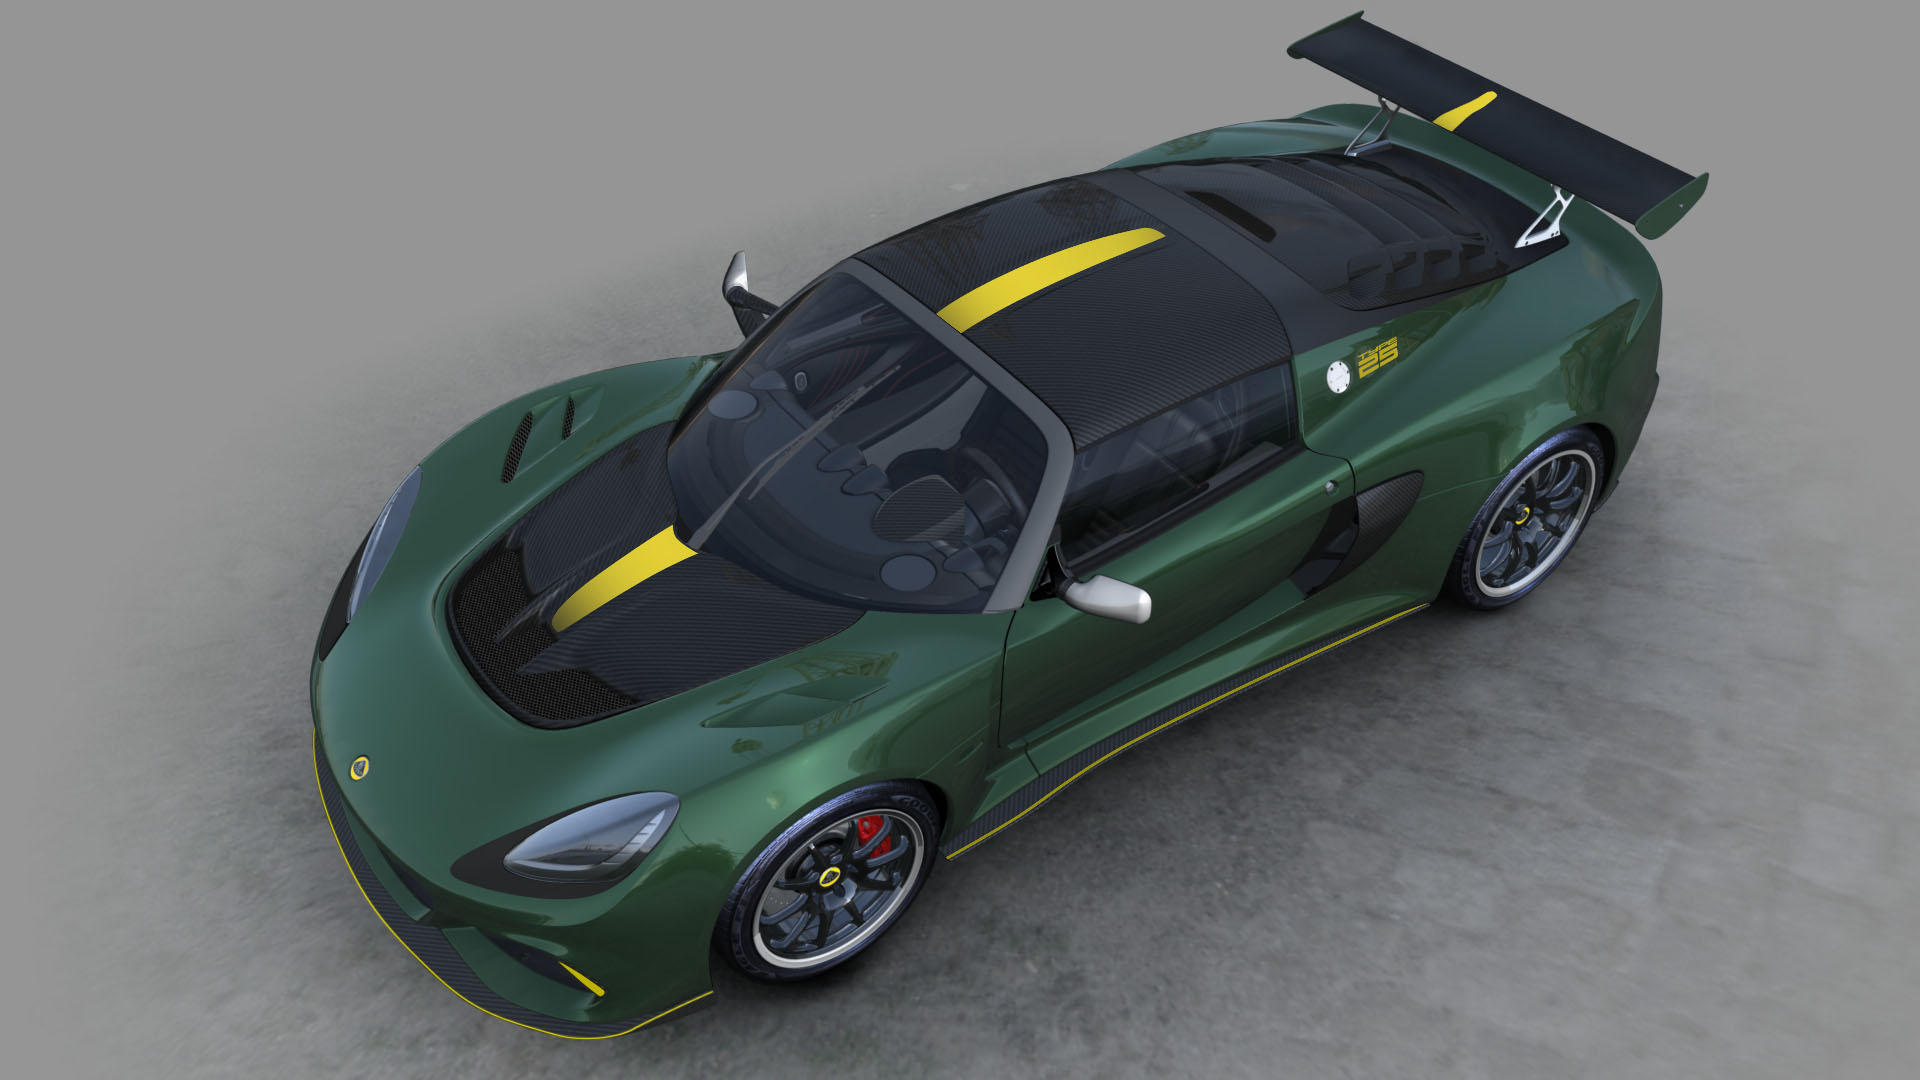 2018-lotus-exige-cup-430-type-25-1